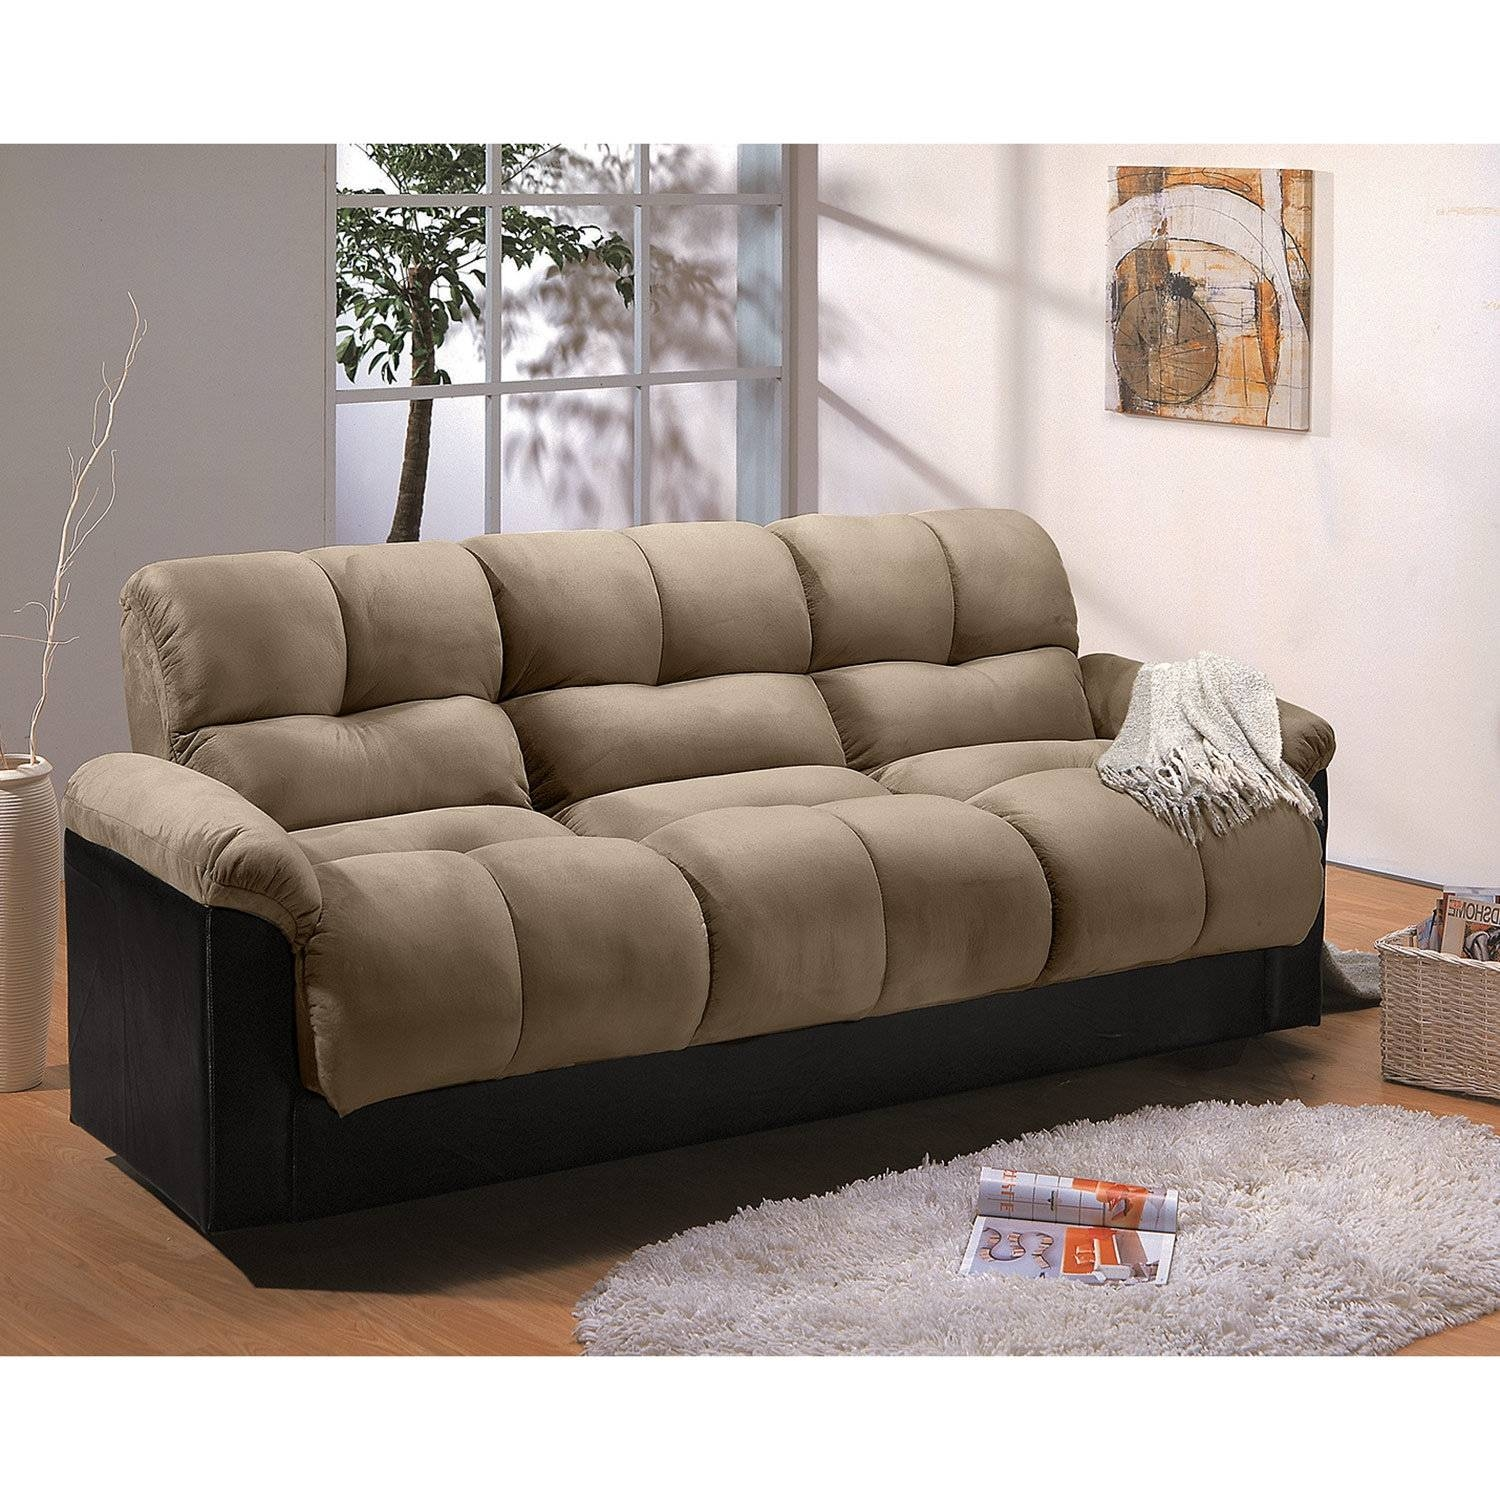 Sofas Center : Impressive Futon Sofa Photopirations Waltz Black In City Sofa Beds (View 27 of 30)